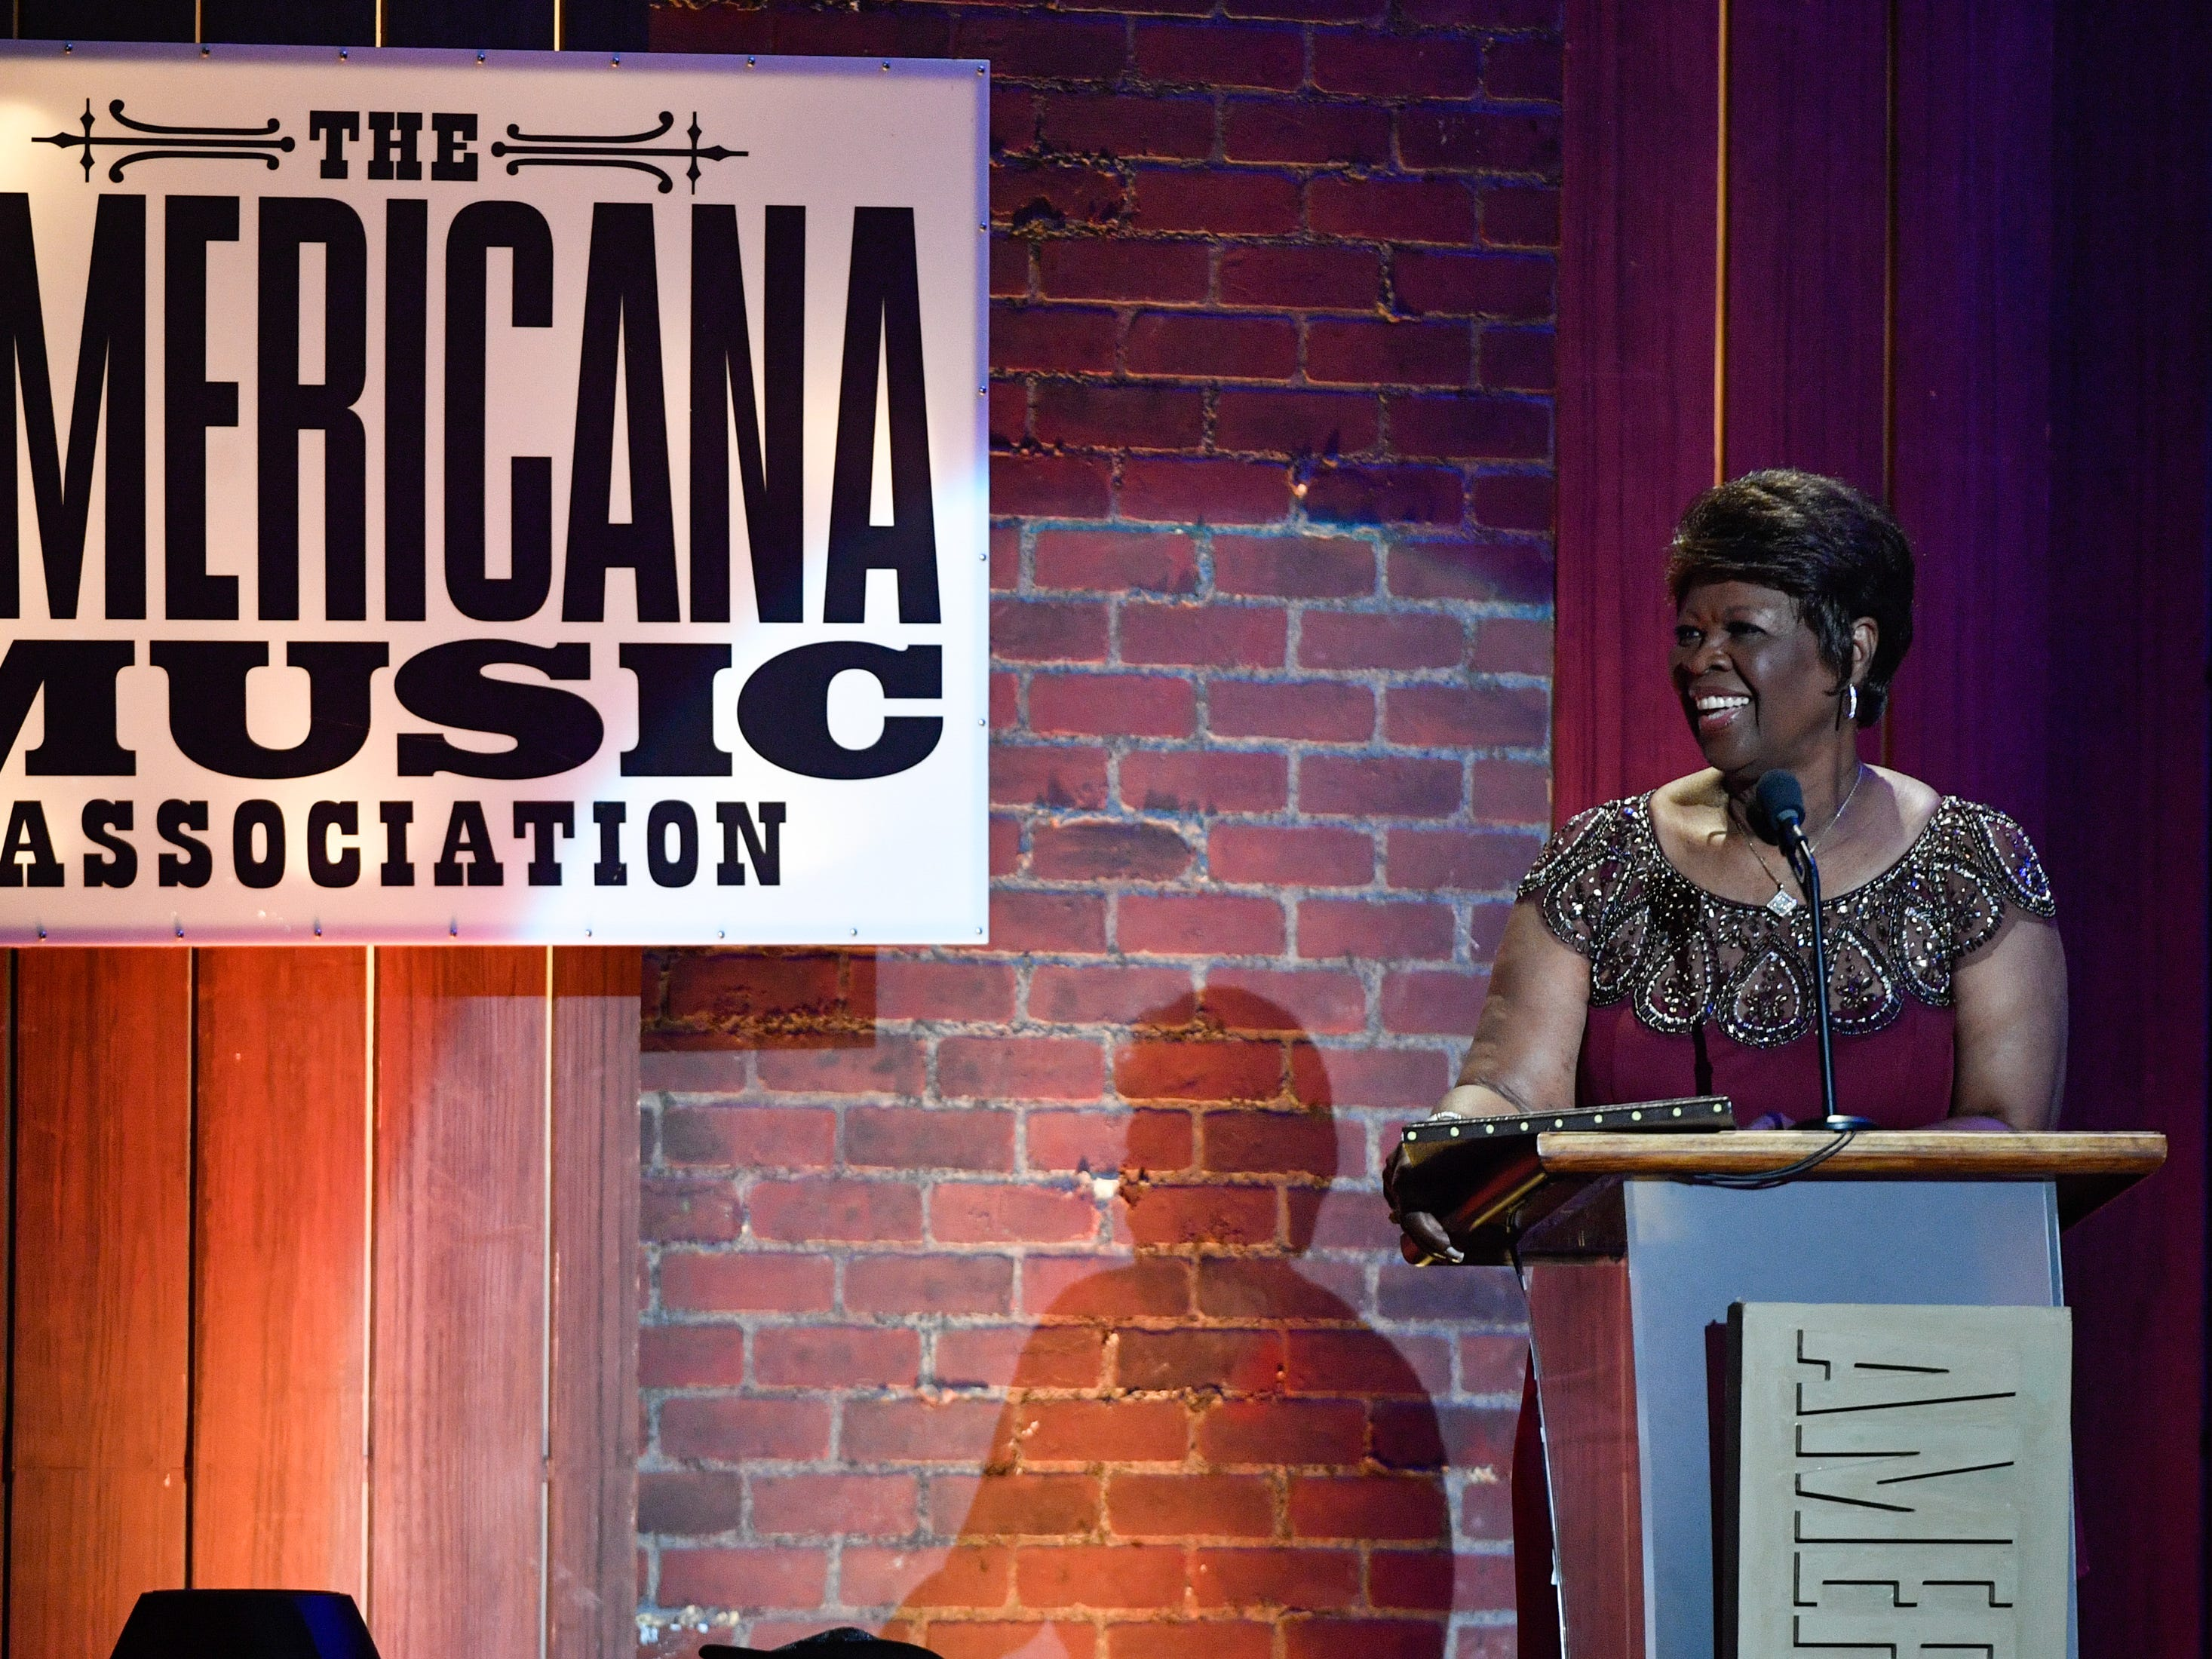 Irma Thomas accepts the Lifetime Performance Award performs during the 2018 Americana Honors and Awards show at the Ryman Auditorium in Nashville, Tenn., Wednesday, Sept. 12, 2018.